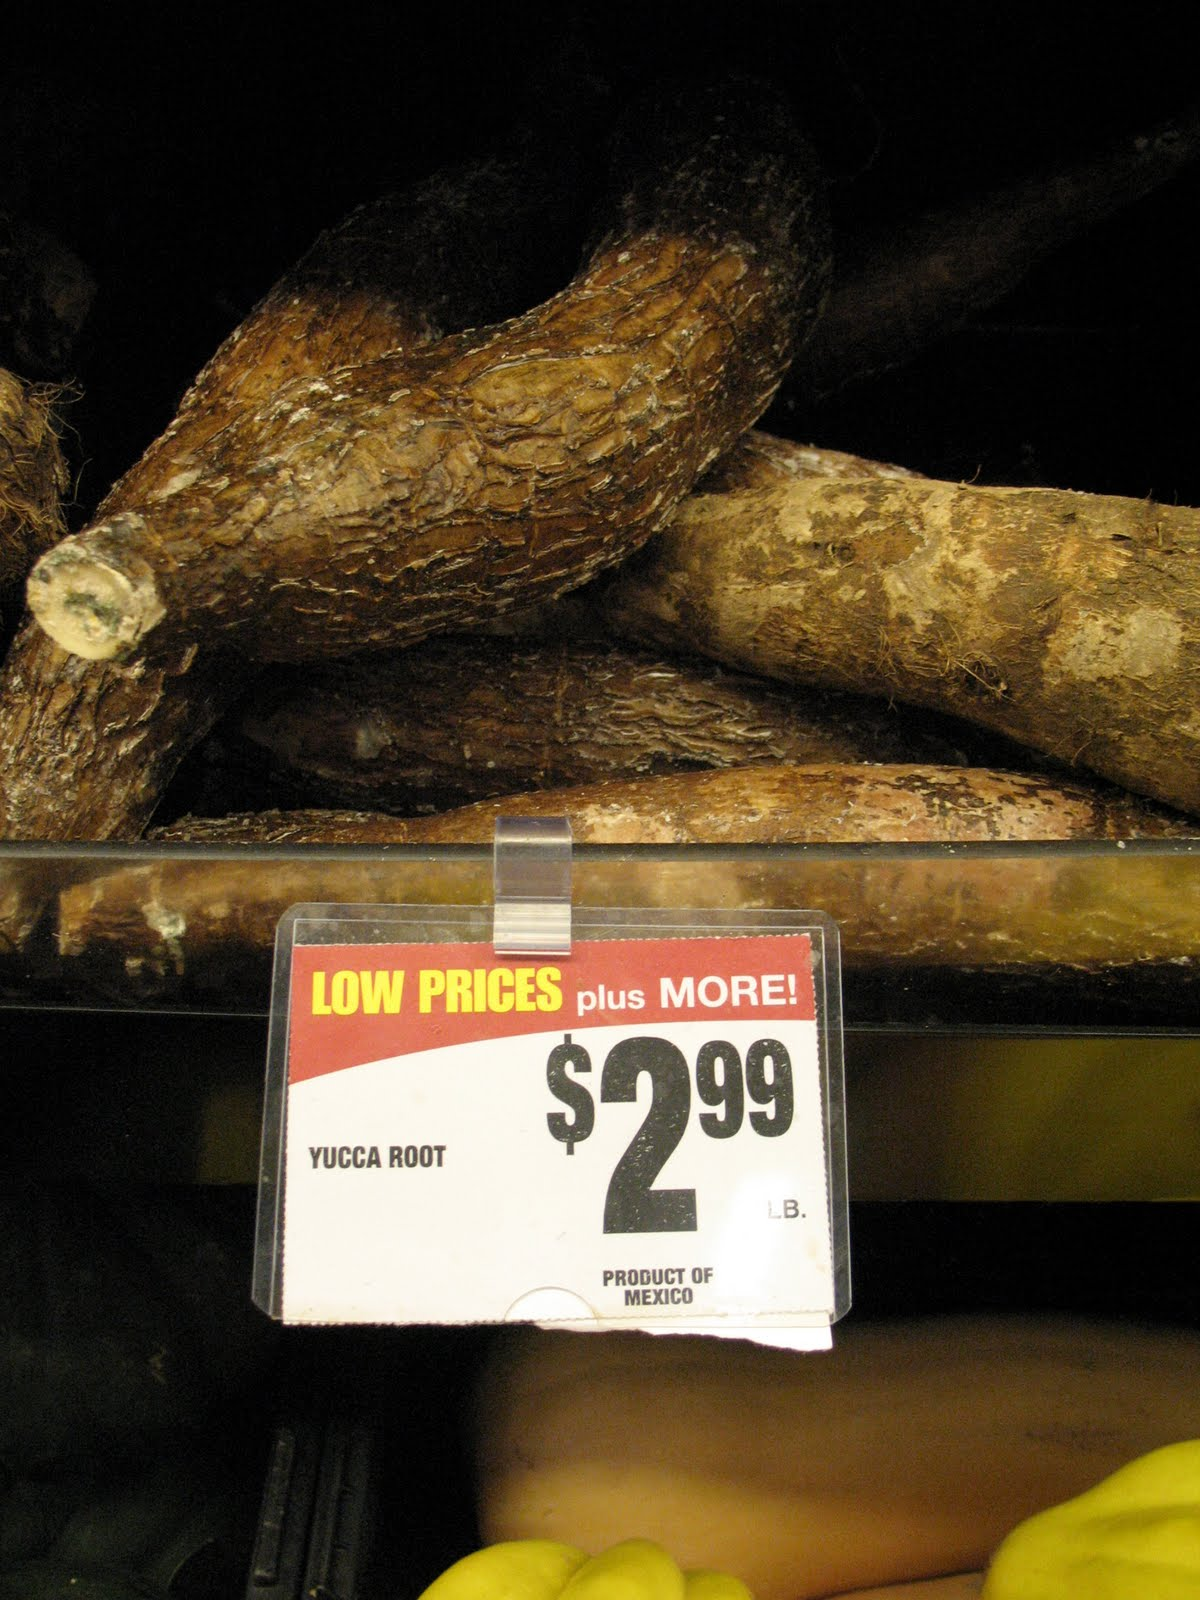 Can My Dog Eat Yucca Root